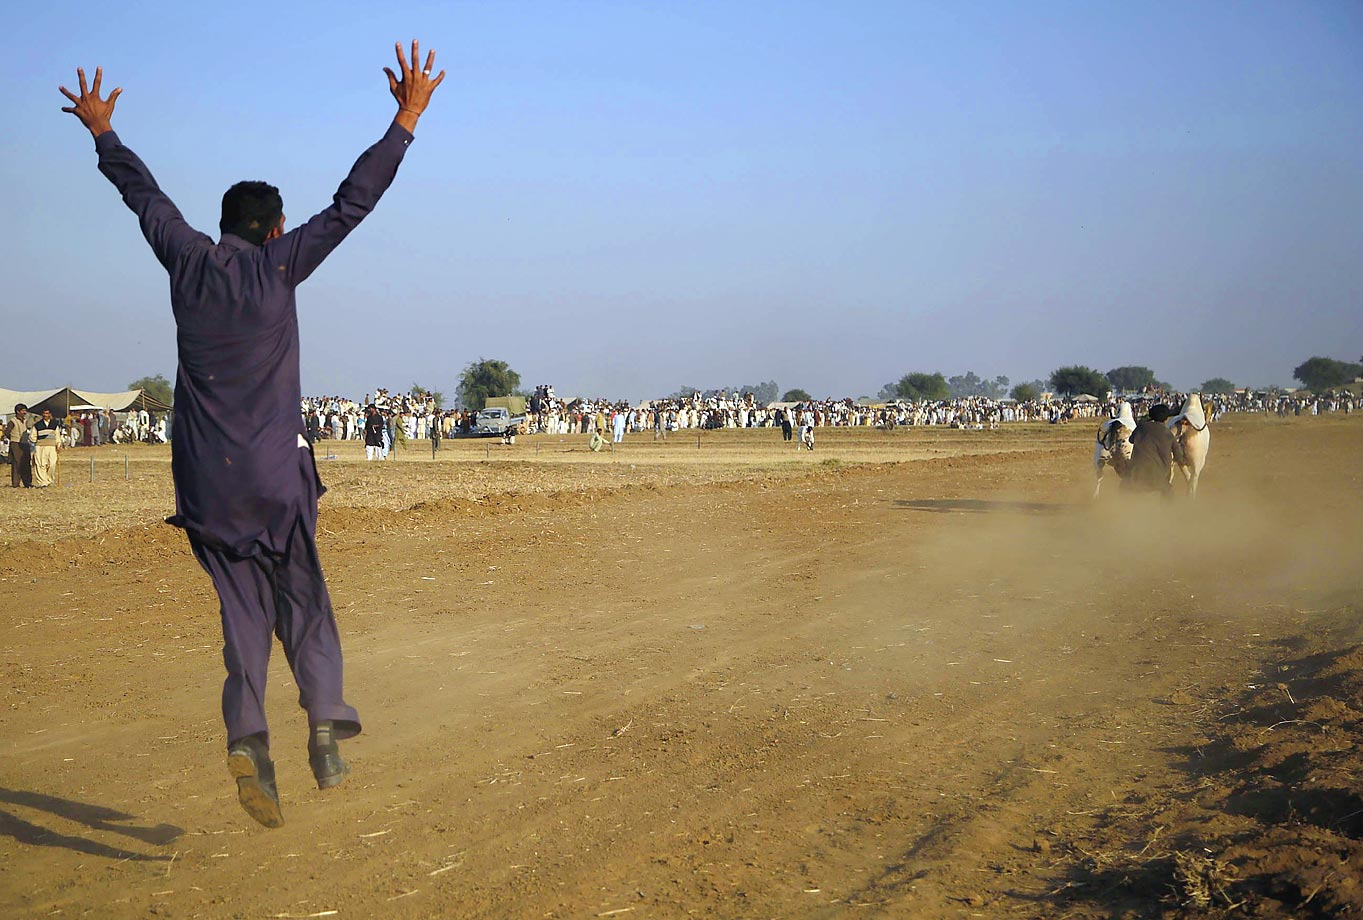 A Pakistani farmer freaks out a little after the start of a race in which 200 bulls were competing on a 400-meter length field near the Pakistani capital city Islamabad.